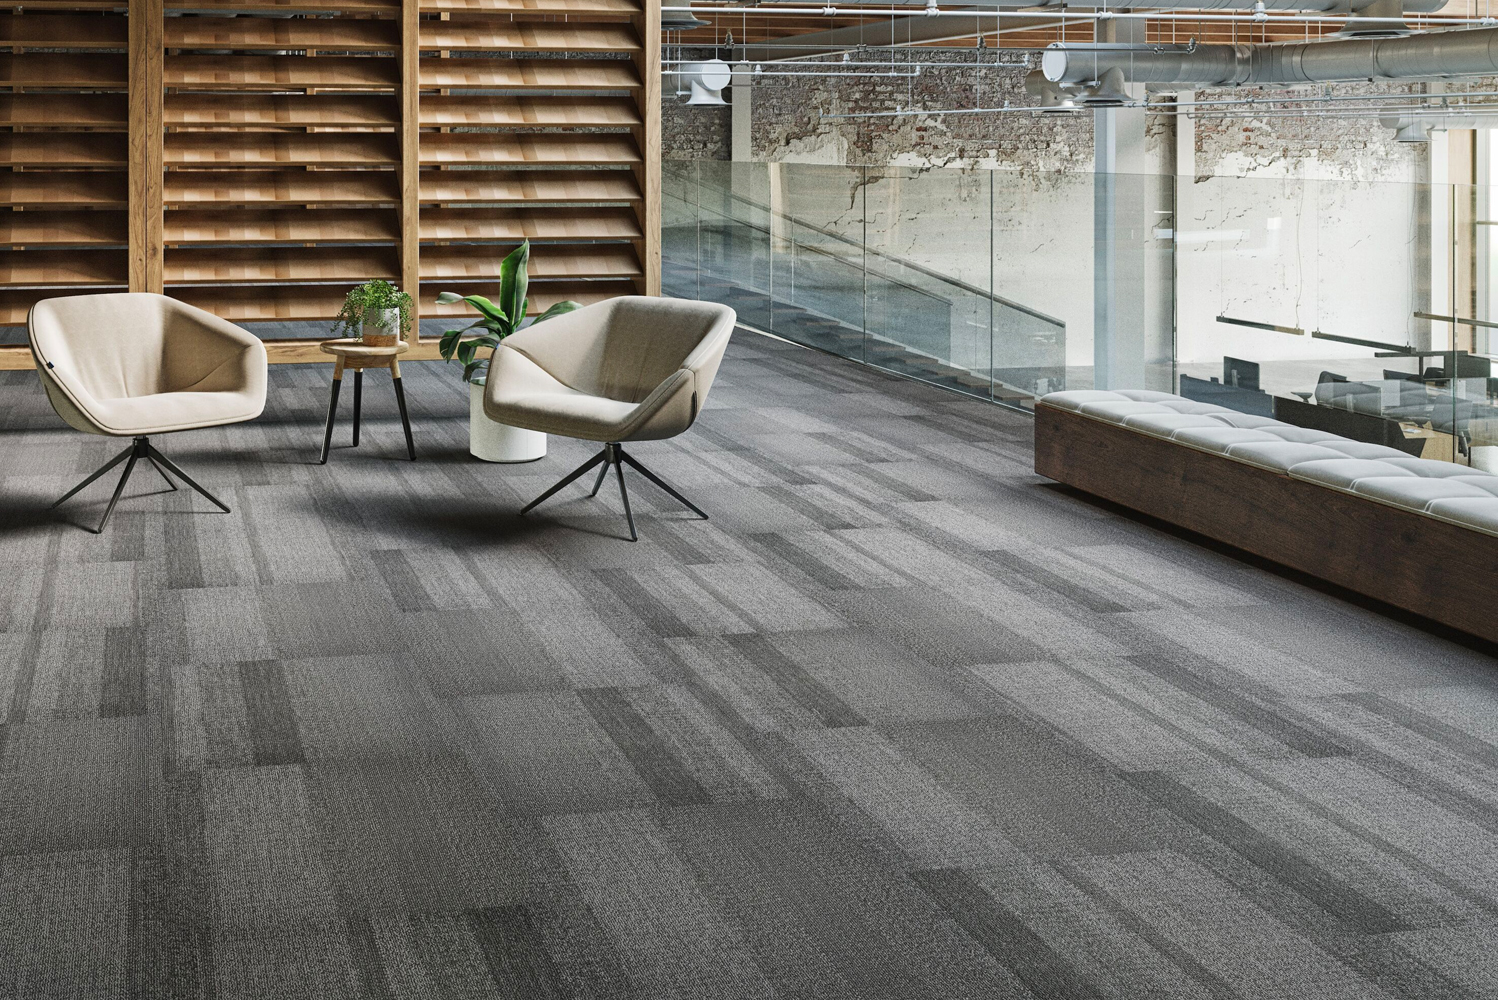 Braided is made with a new pivot installation method and is offered on ethos Modular with Omnicoat Technology backing.